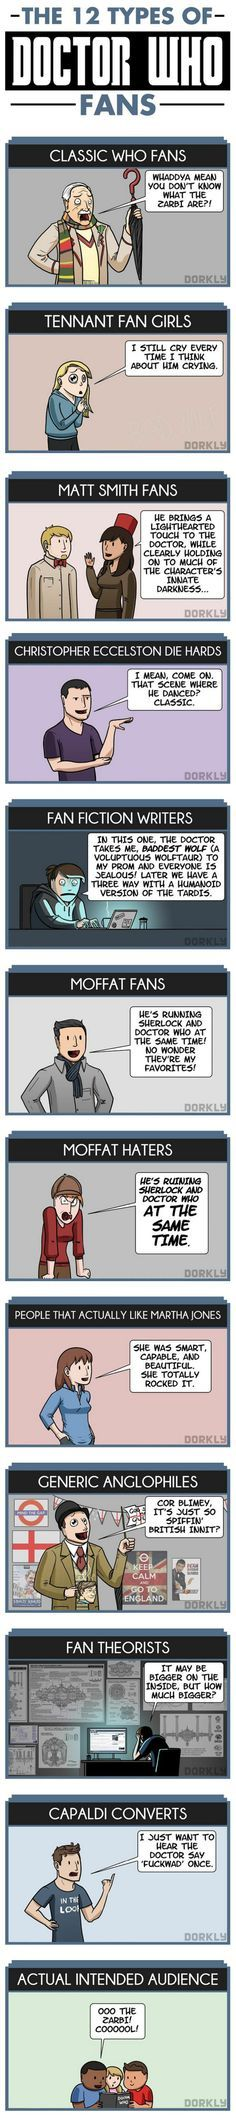 12 Types of Doctor Who Fans